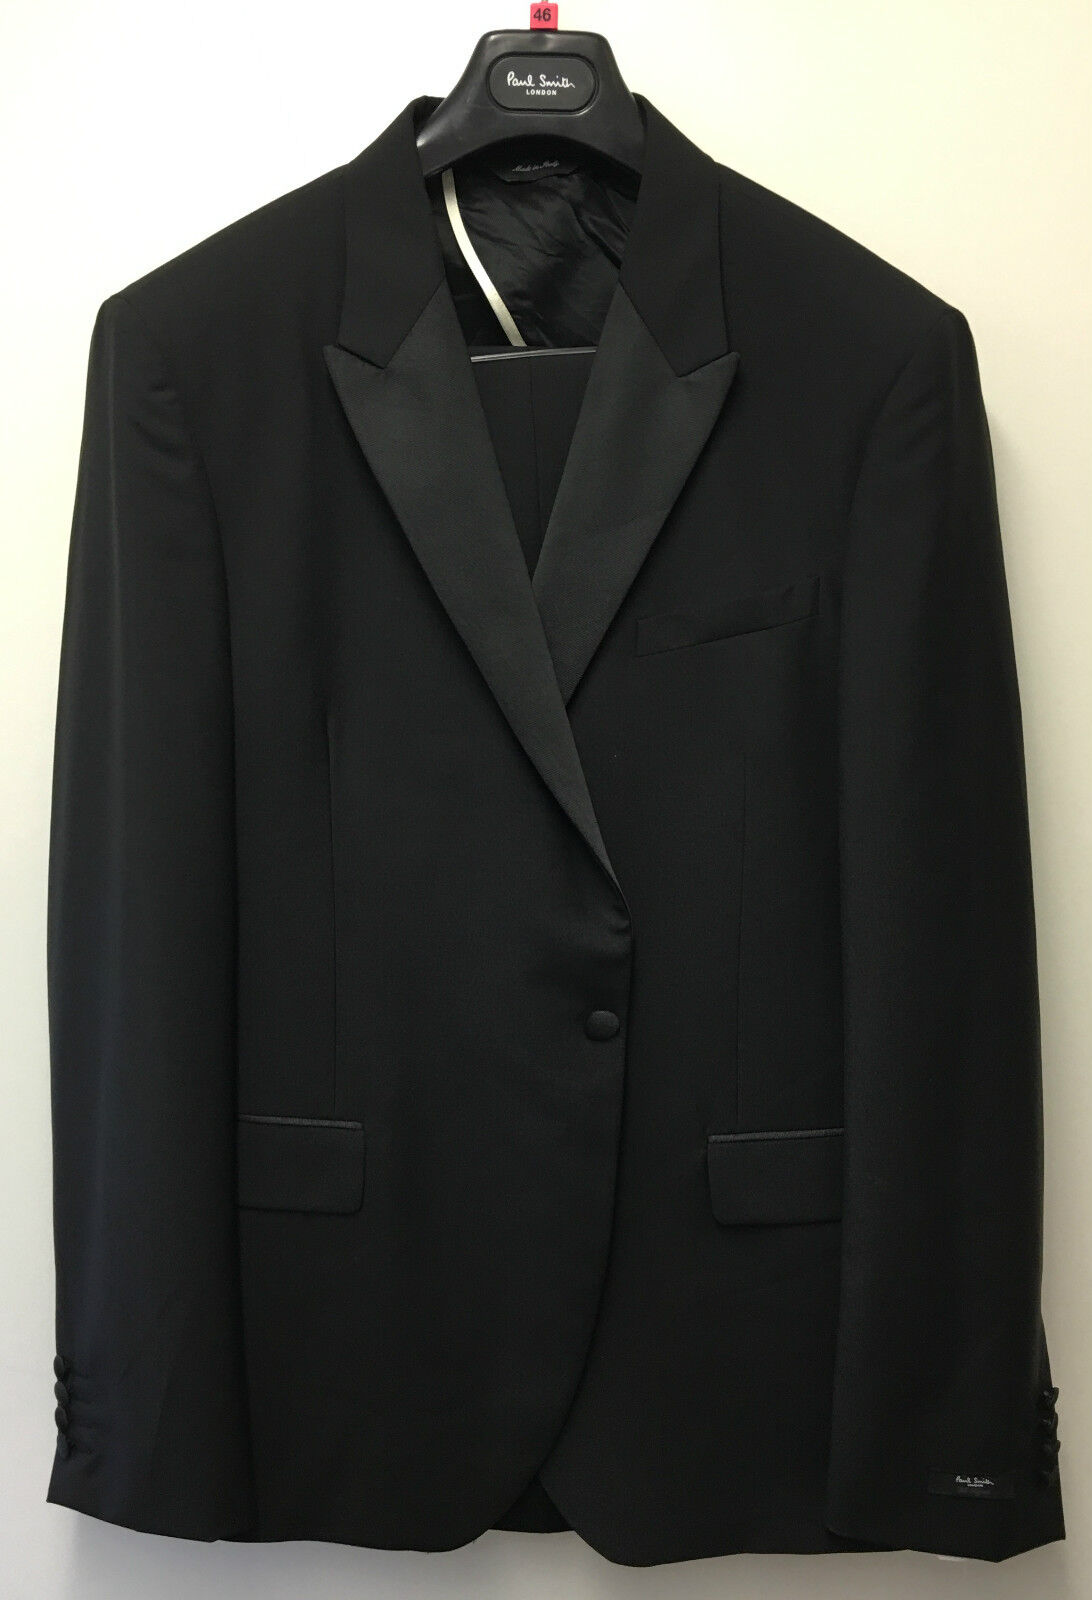 Paul Smith Evening Suit BYARD 84% Wool 16% Mohair TailoROT Fit UK46R